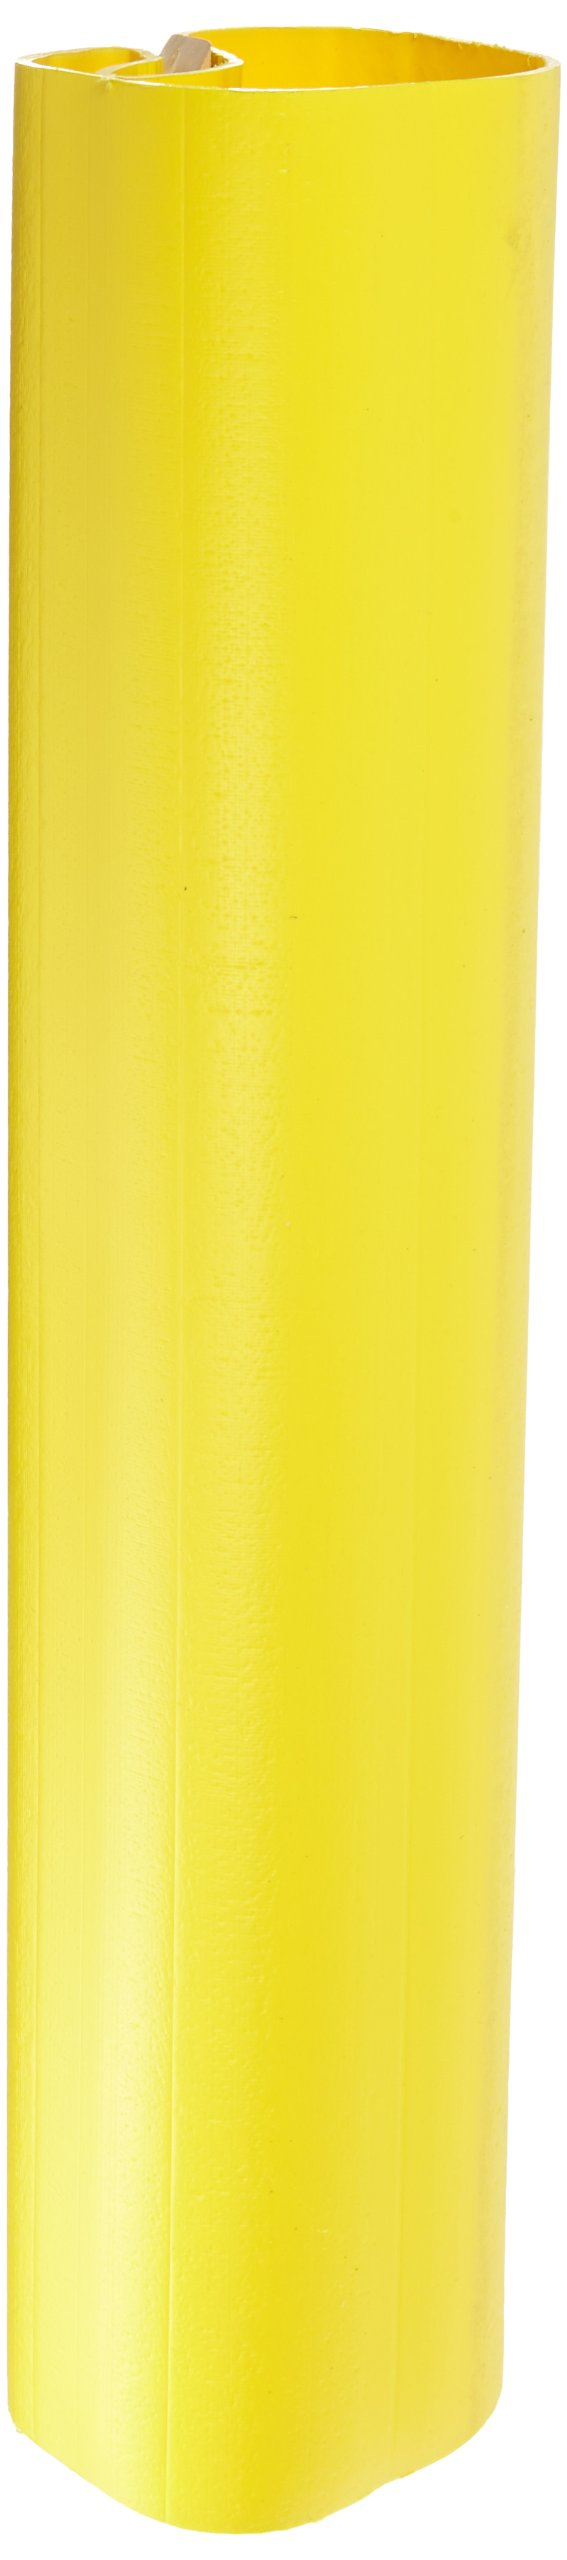 UltraTech 1521 HDPE Ultra-I-Beam Protector, 7-1/2'' Length x 8-1/2'' Width x 36'' Height, Yellow